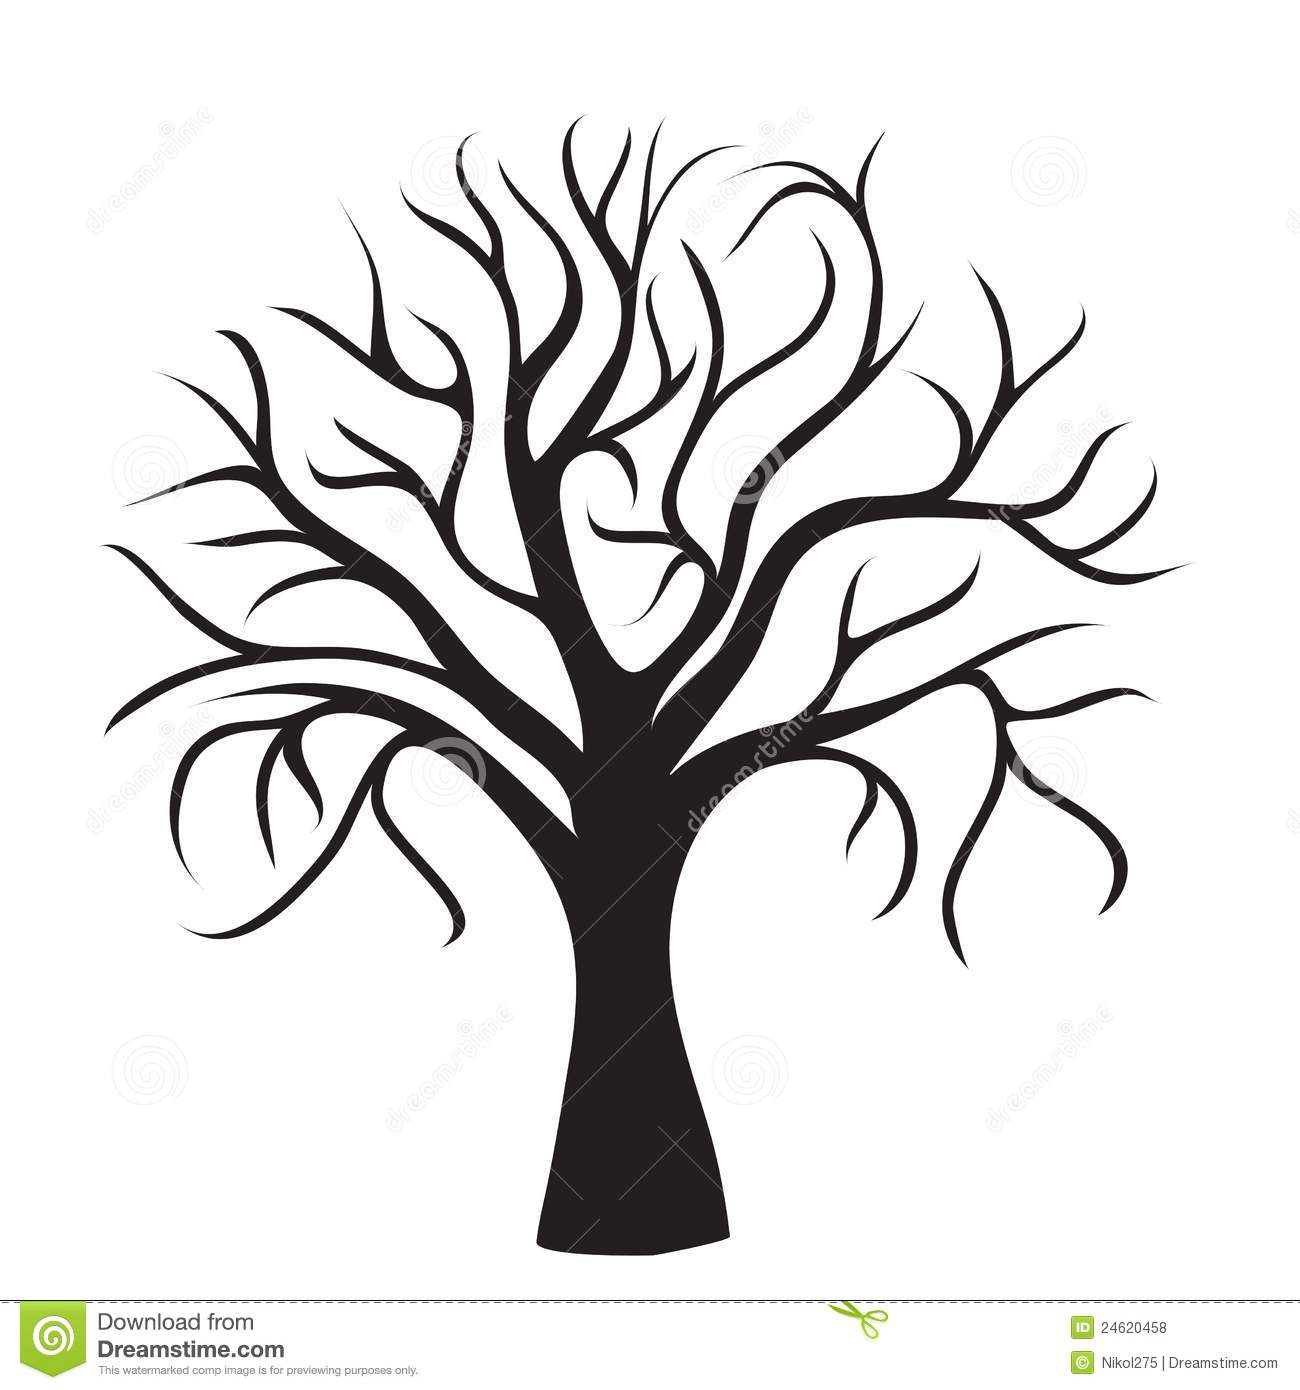 Clip Art Tree No Leaves | Clipart Panda - Free Clipart Images